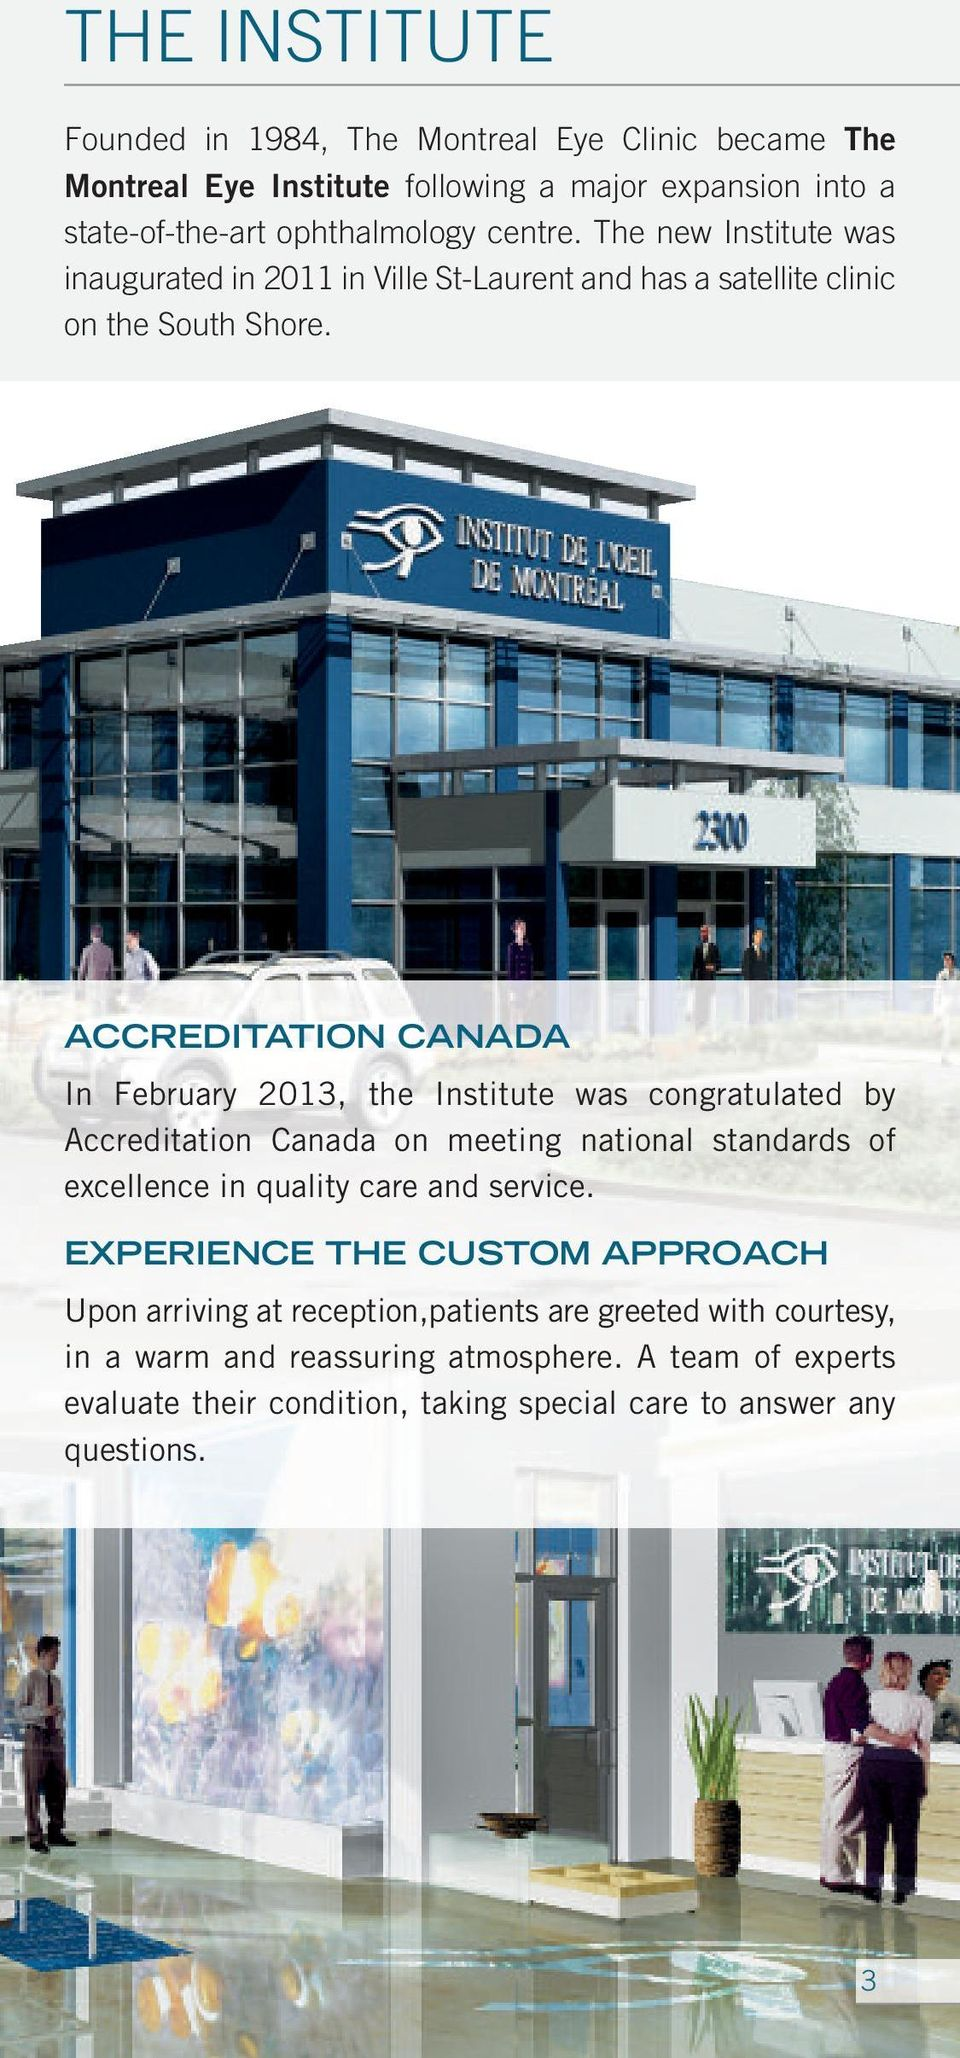 ACCREDITATION CANADA In February 2013, the Institute was congratulated by Accreditation Canada on meeting national standards of excellence in quality care and